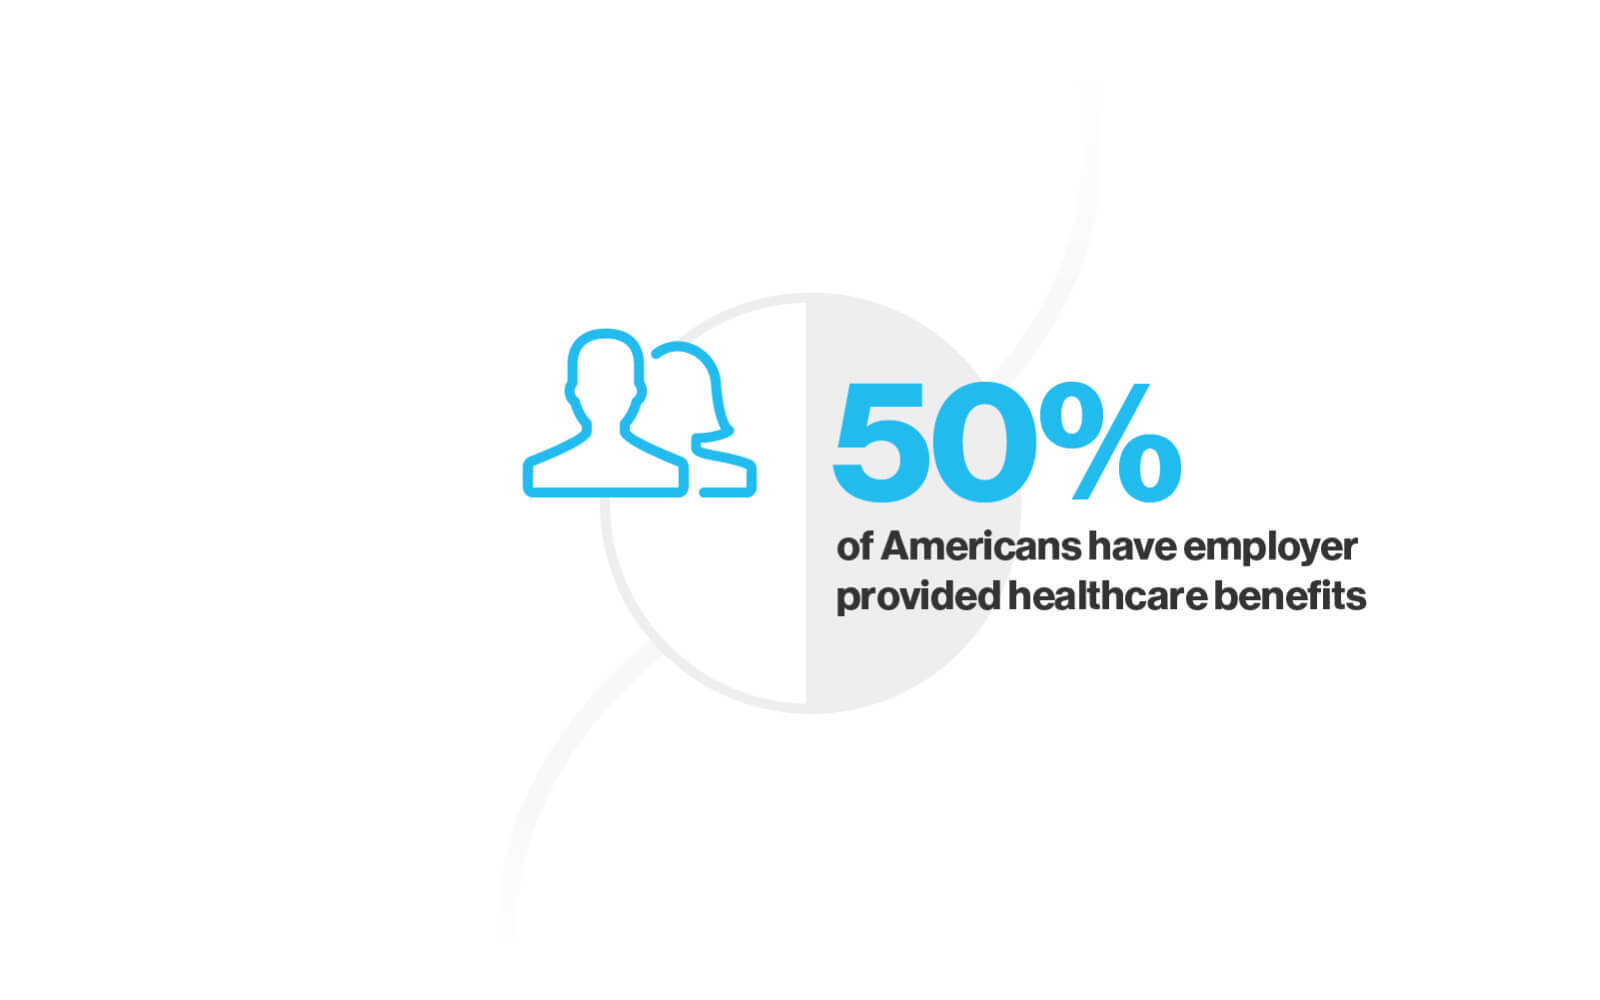 50% of Americans have employer provided healthcare benefits through their jobs. Illustration.